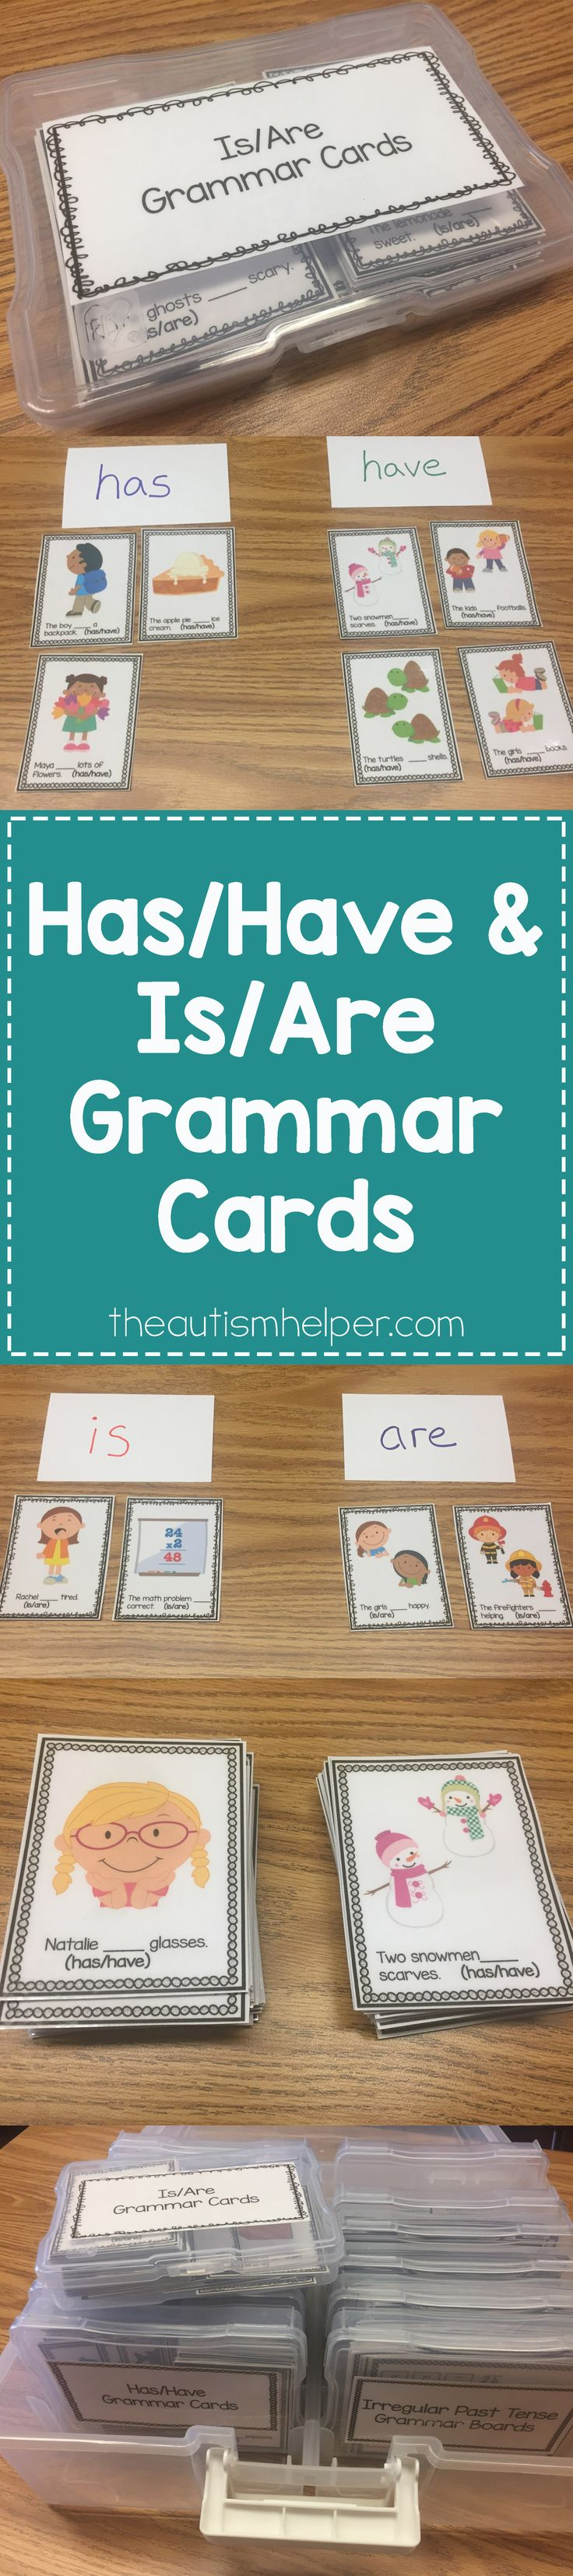 Our Has/Have & Is/Are grammar cards contain 72 cards per set to help students with the repetition needed for grammar skills!! From theautismhelper.com #theautismhelper